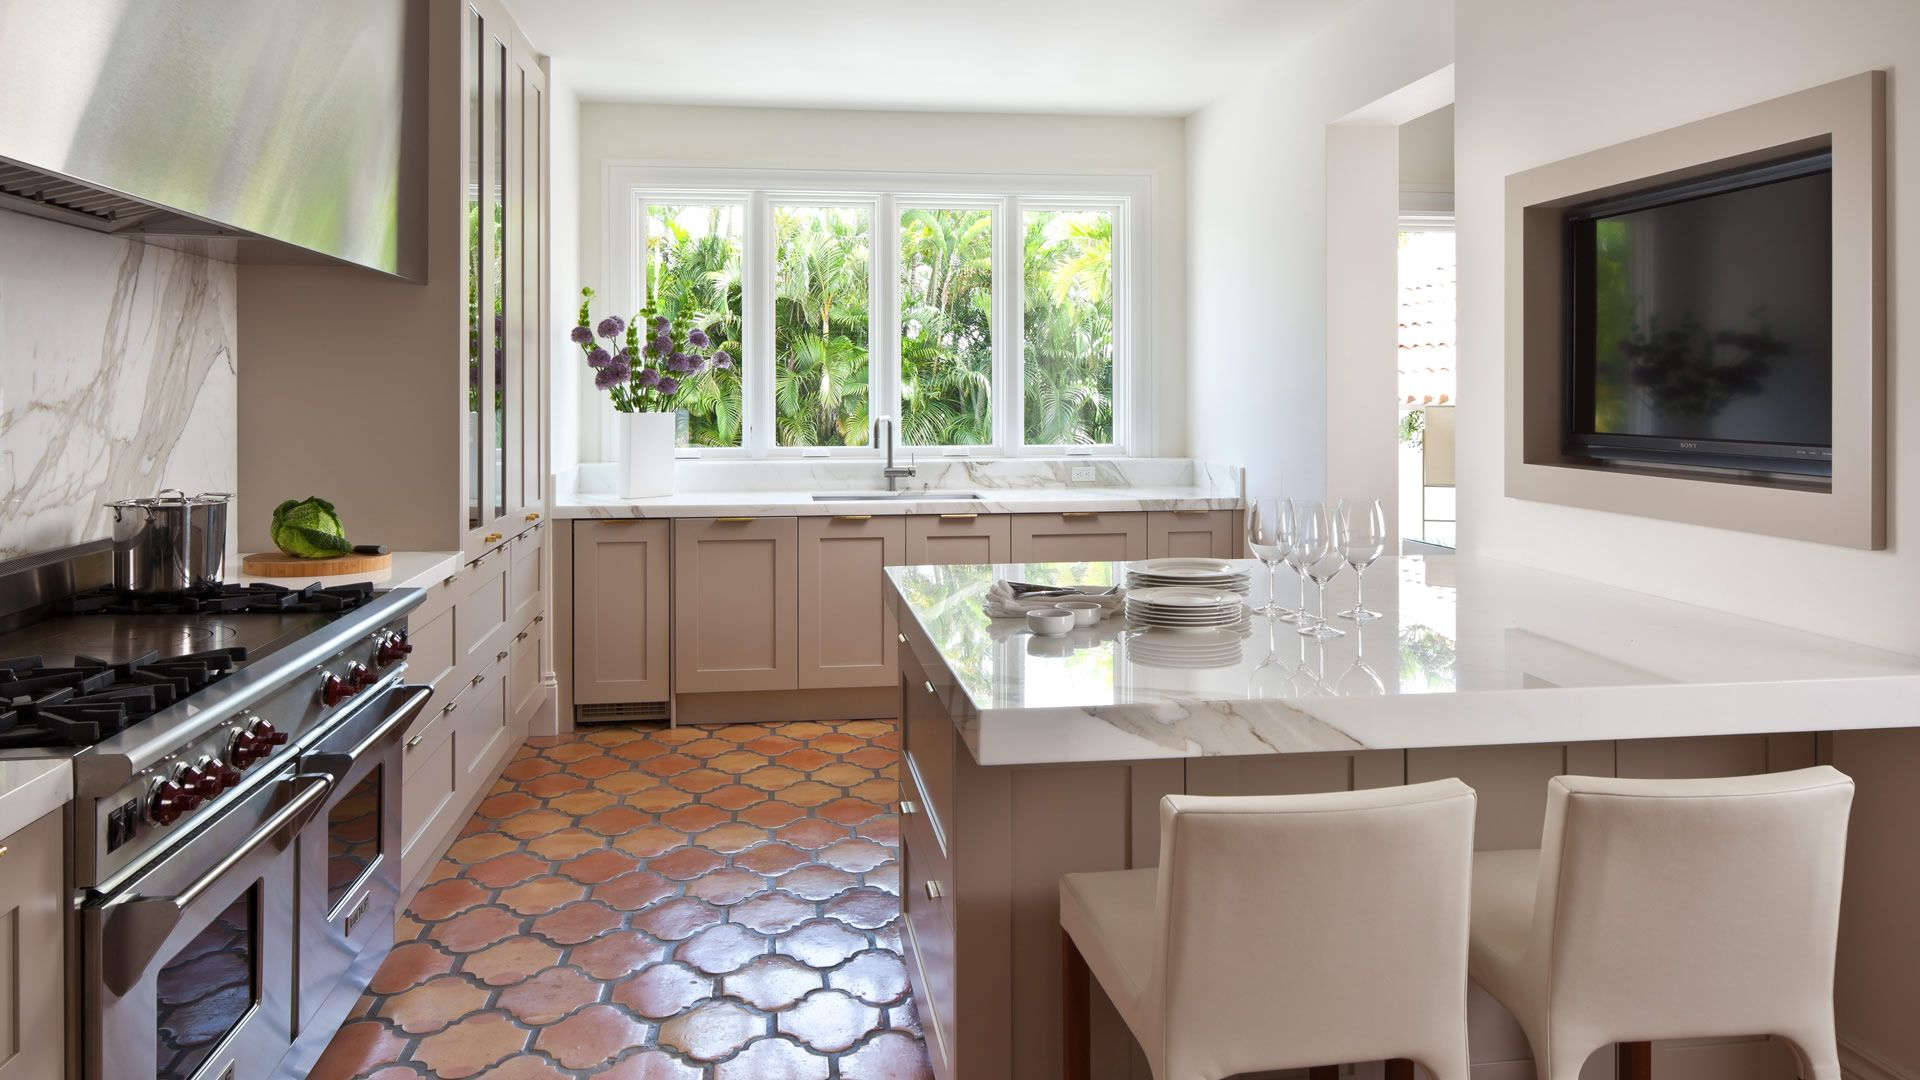 Cool grey painted cabinetry warm terracotta tile floors marble cool grey painted cabinetry warm terracotta tile floors marble slab bright white walls dailygadgetfo Images